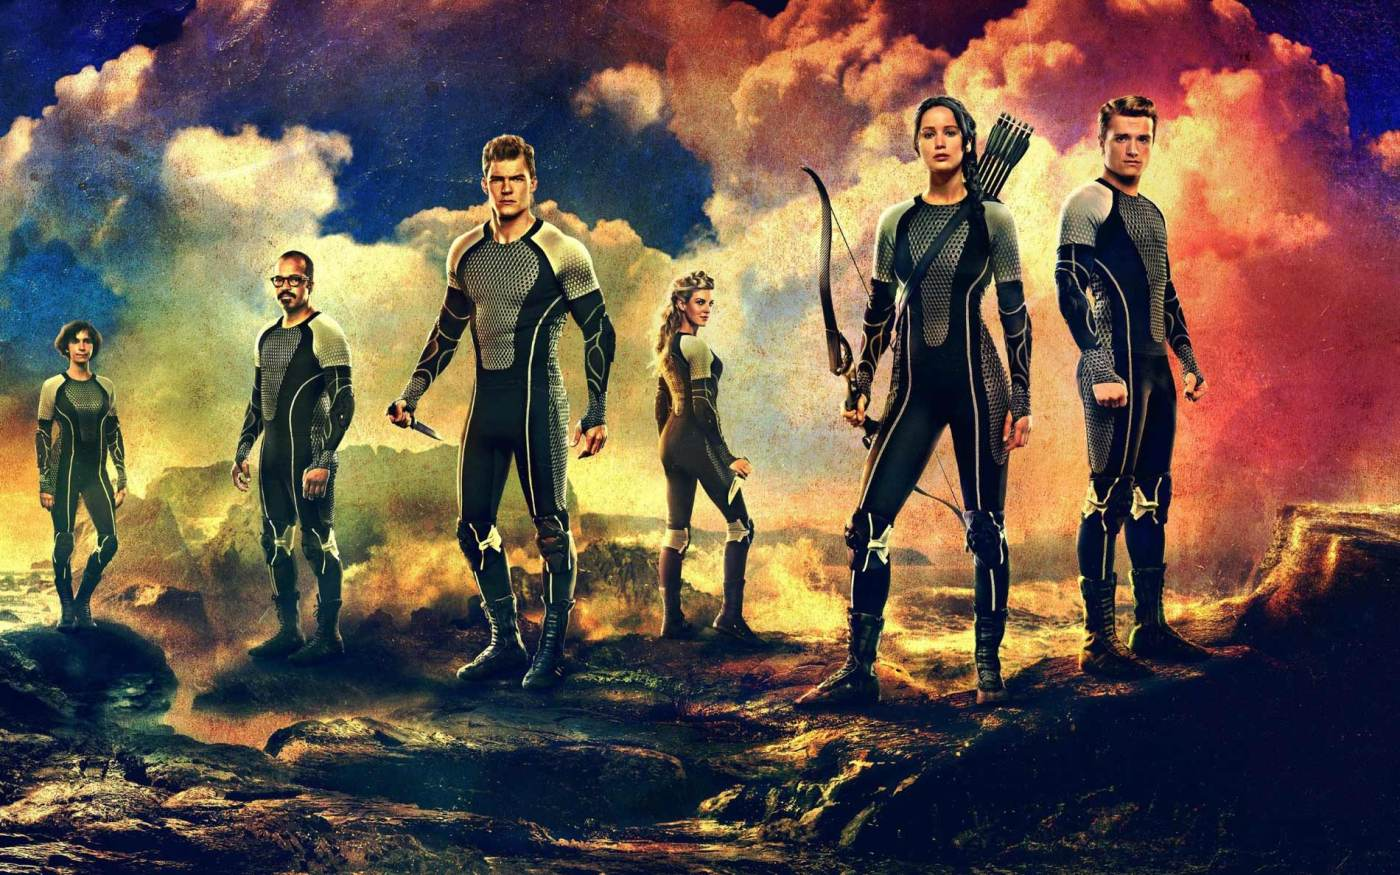 The Hunger Games Movie Review - That Shelf